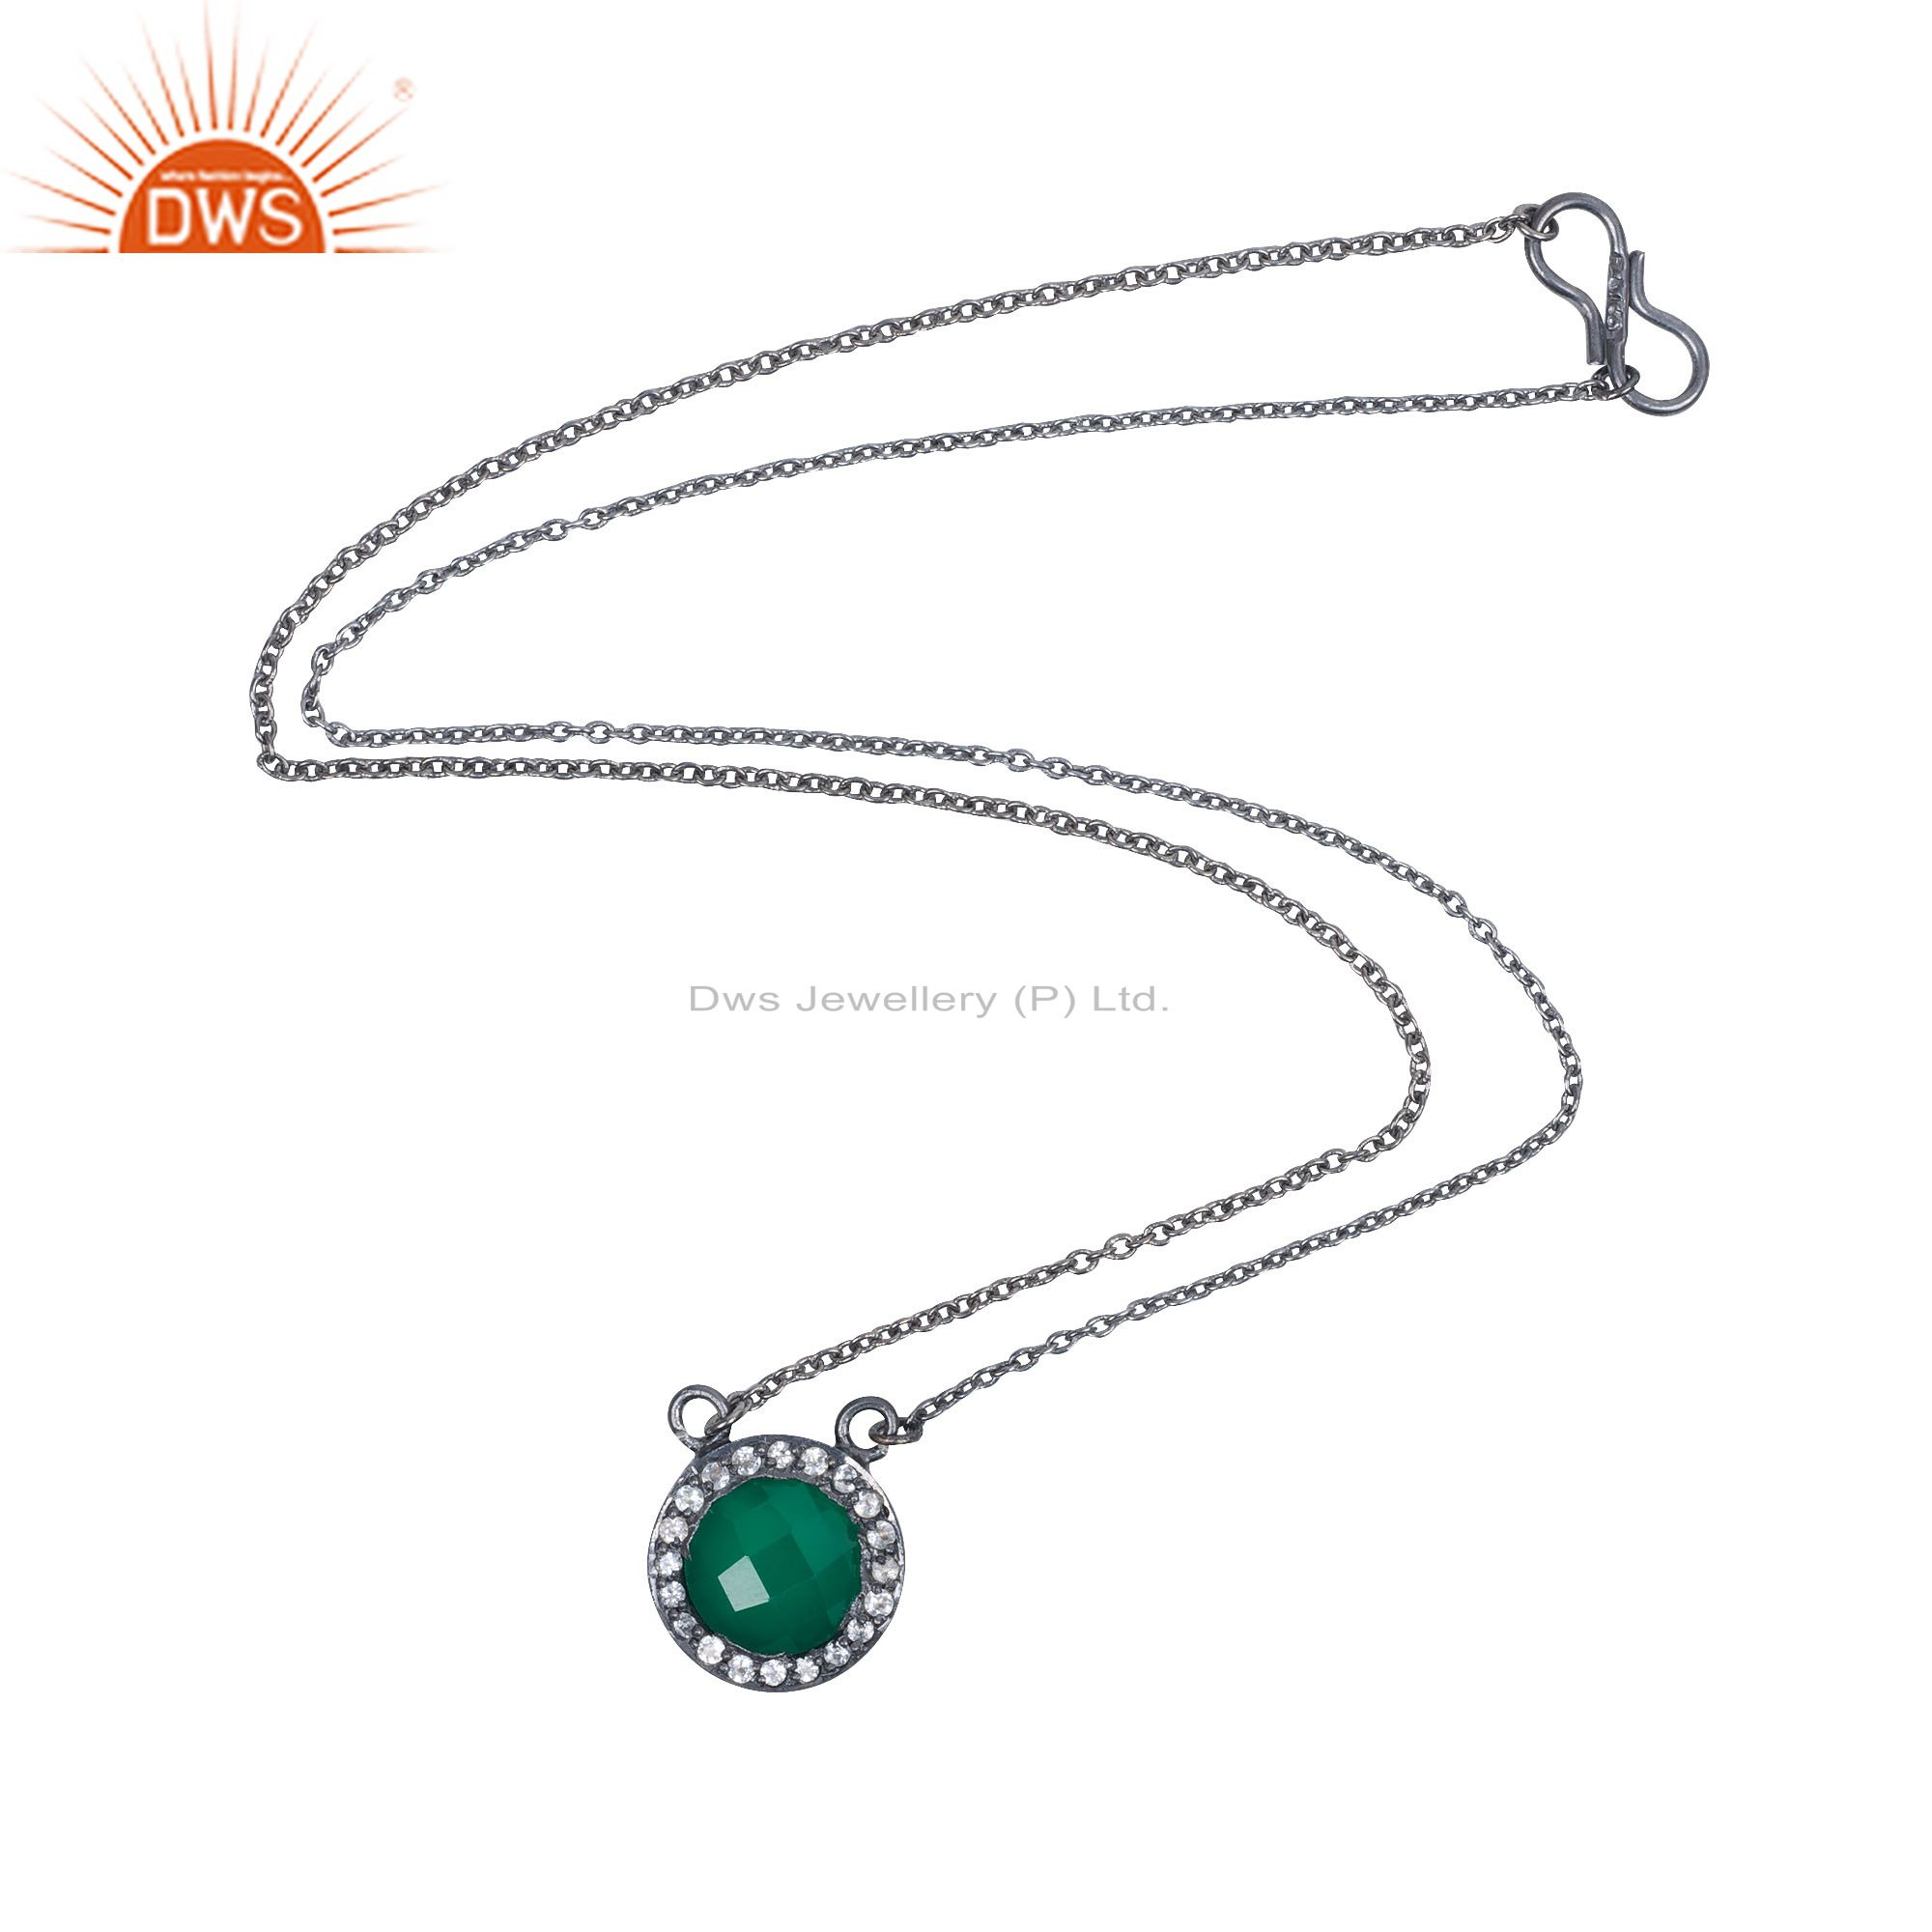 Oxidized Sterling Silver Green Onyx And White Topaz Halo Pendant Chain Necklace